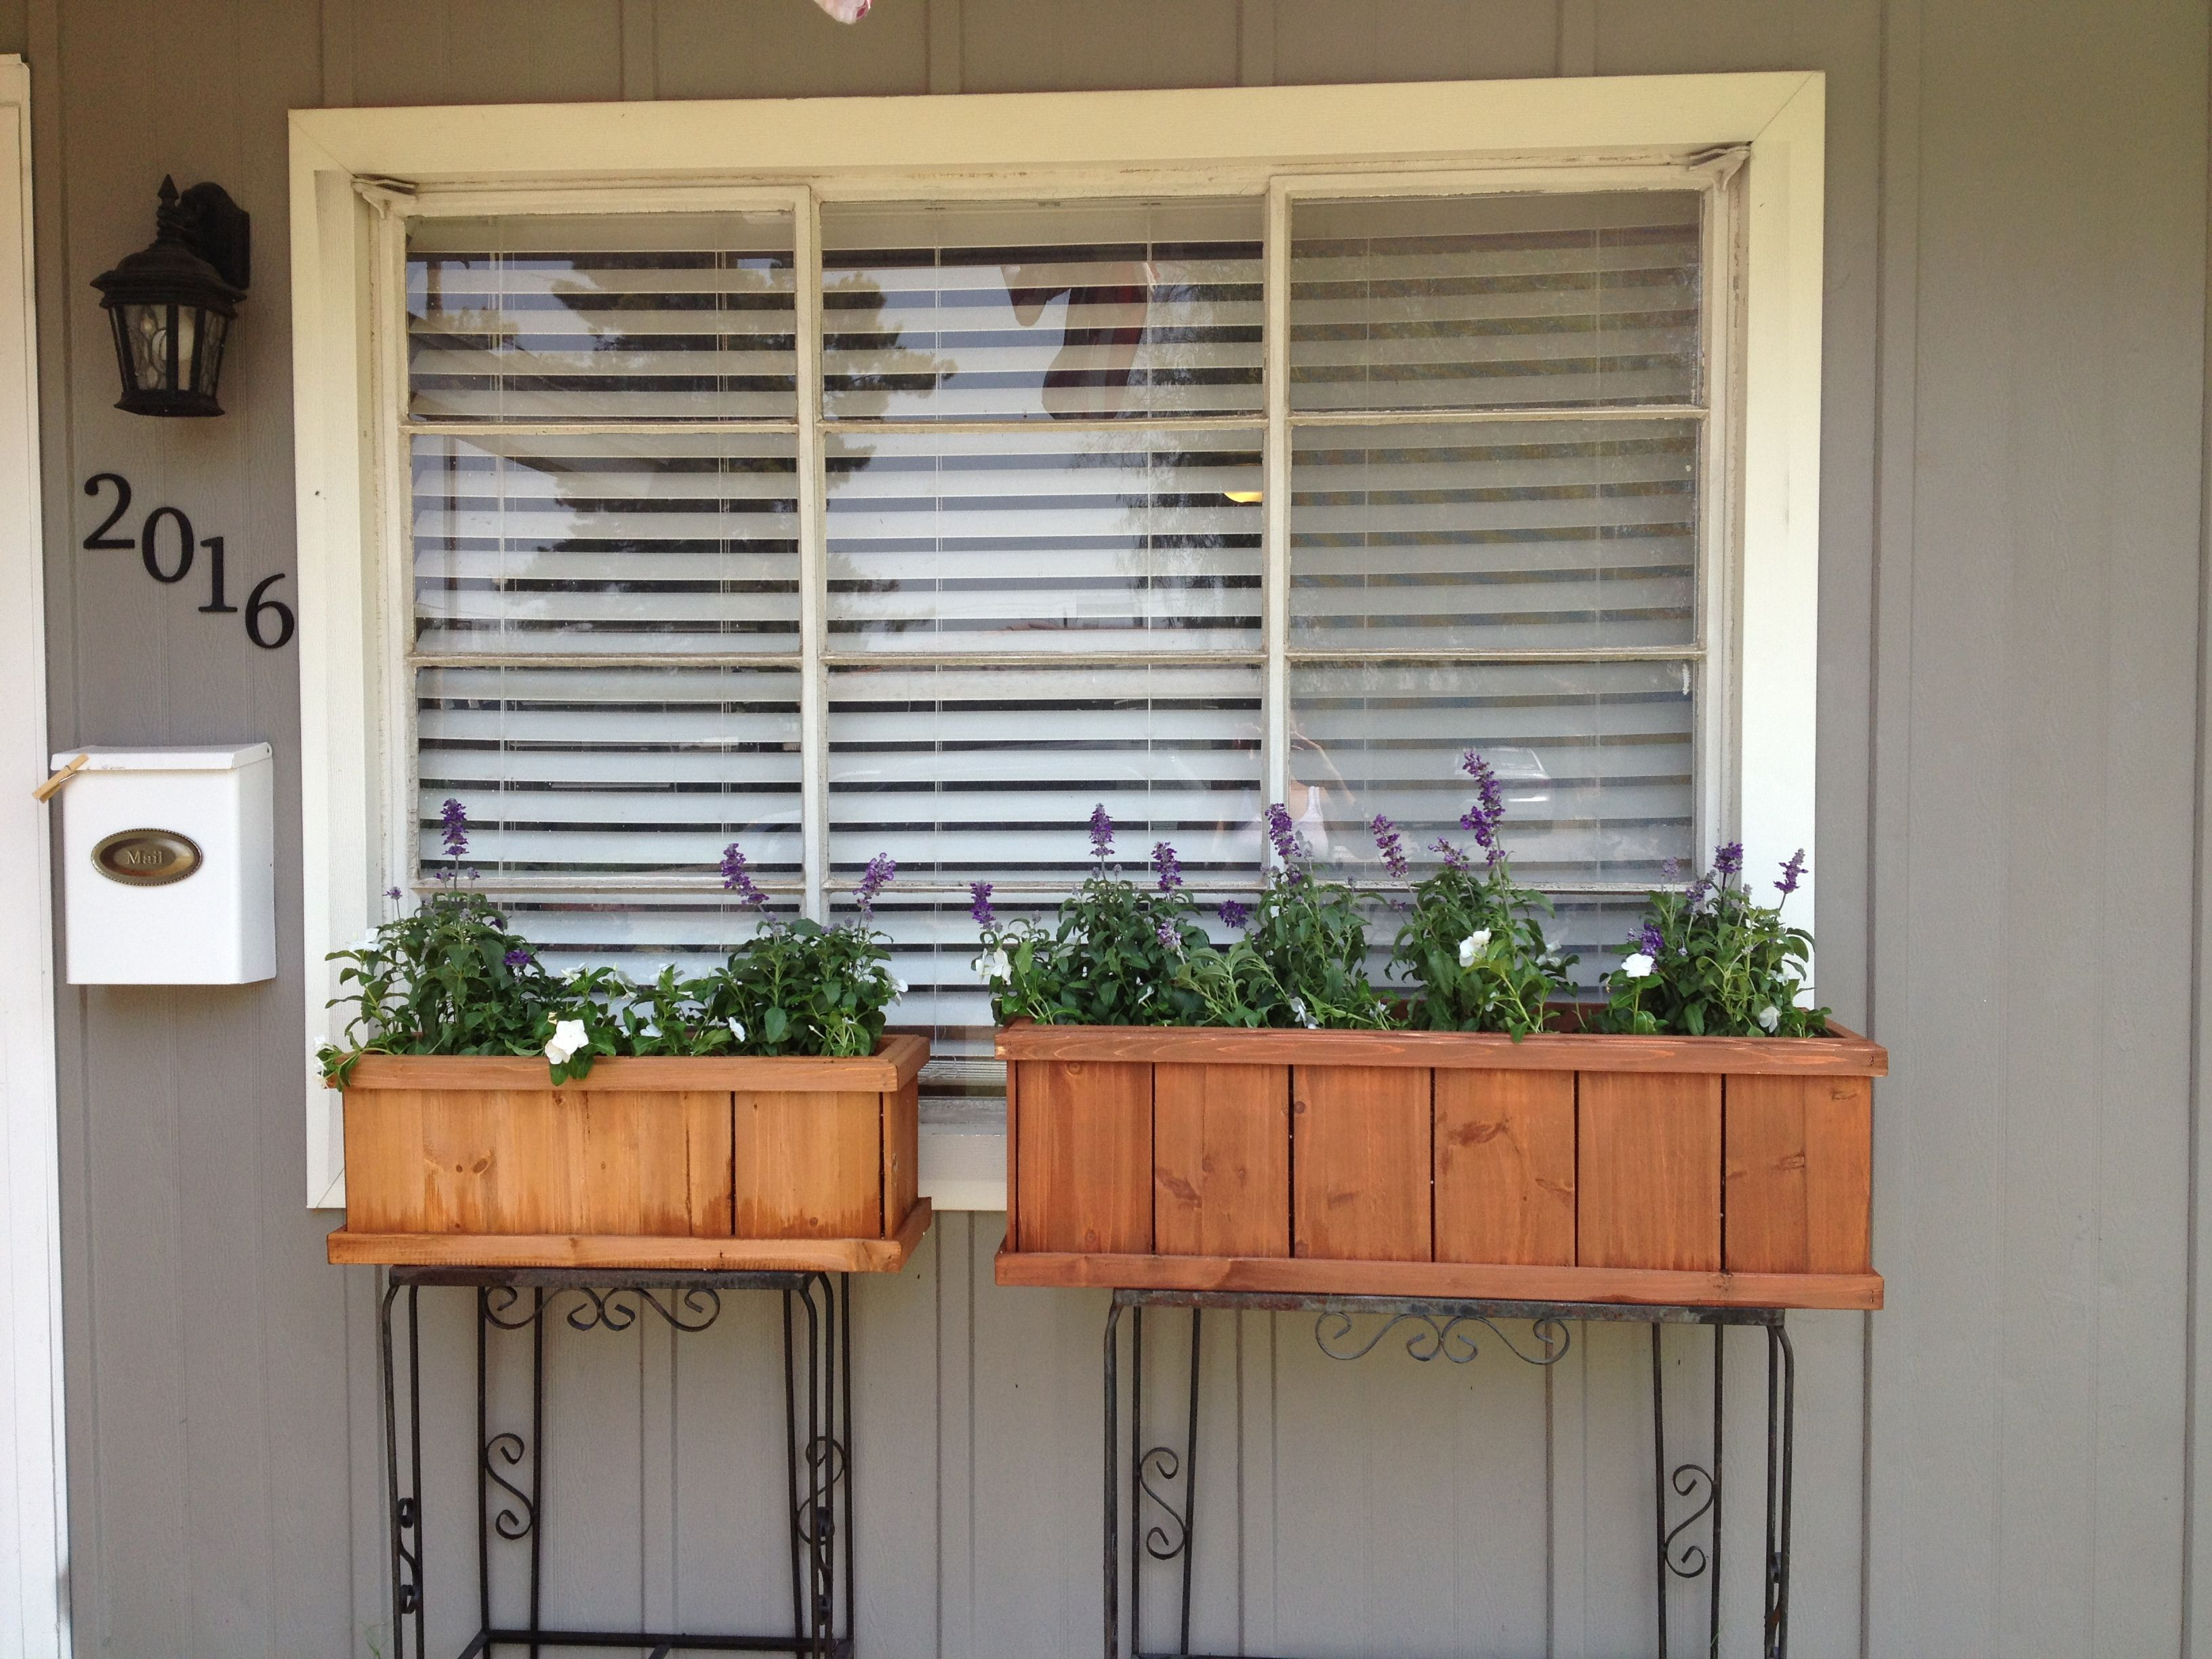 Fish tank used - Old Wrought Iron Fish Tank Stands Used To Hold Up Cedar Planter Boxes Outside Kitchen Window